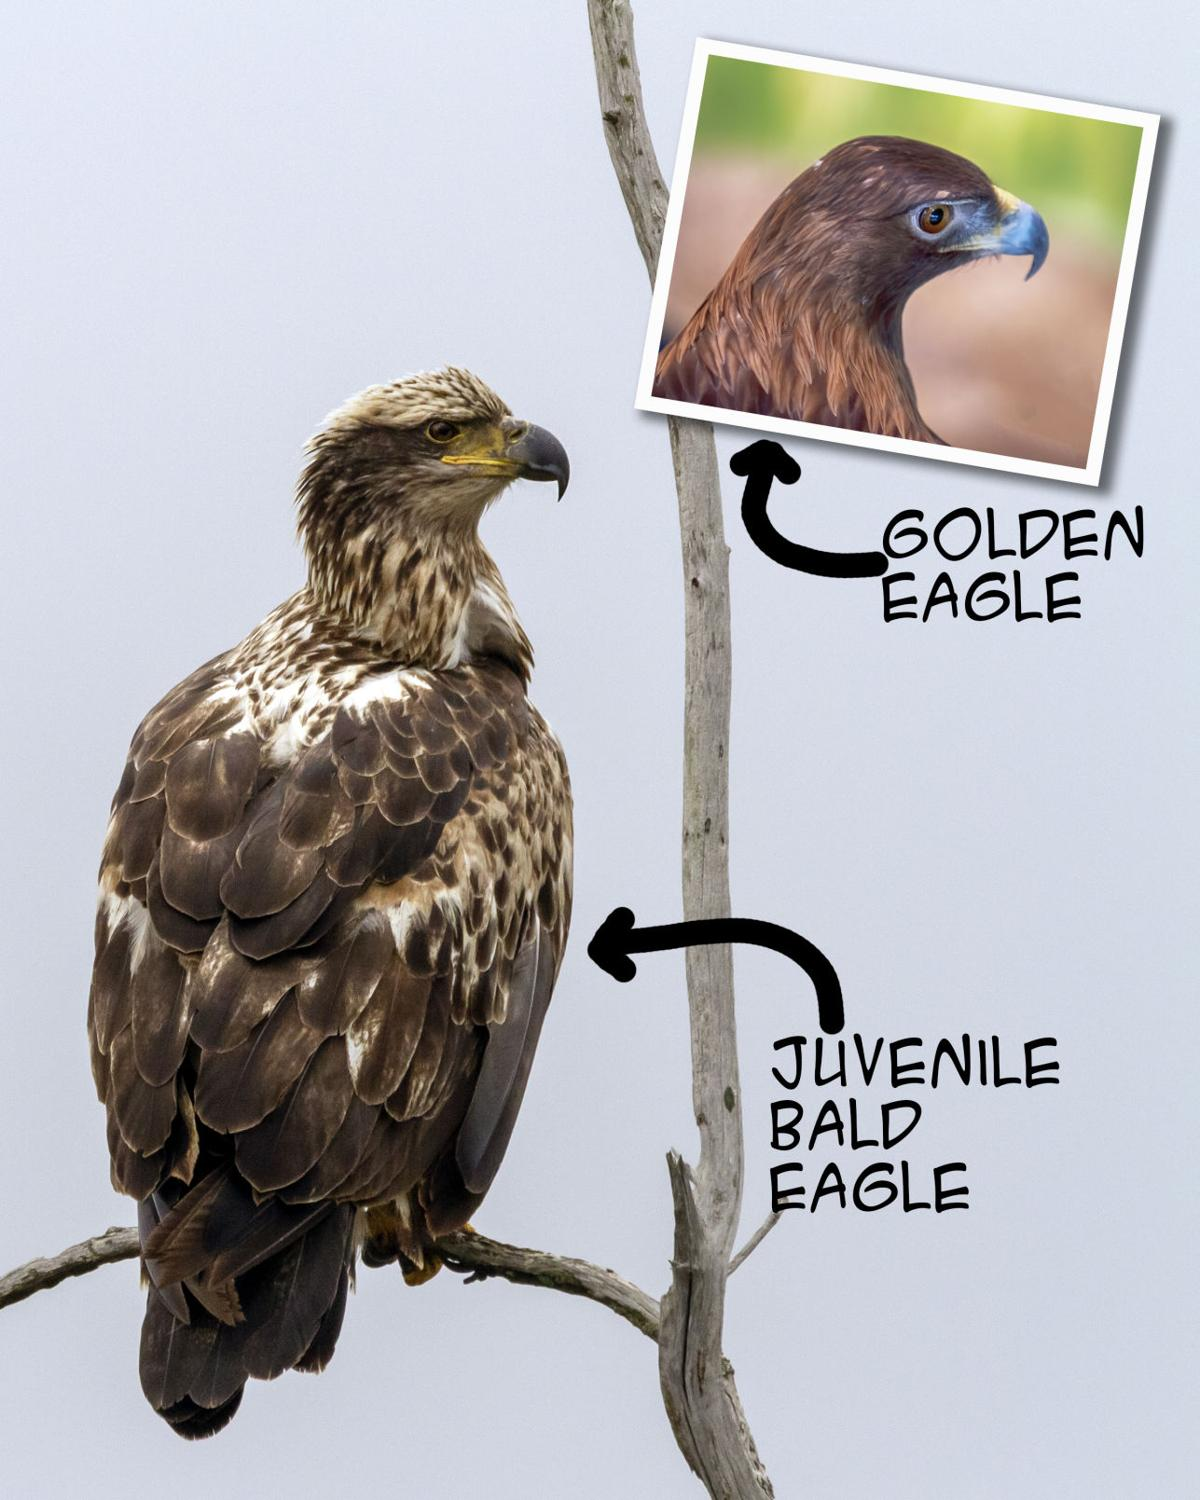 Telling The Difference Between Juvenile Bald Eagles And Goldens News Oleantimesherald Com